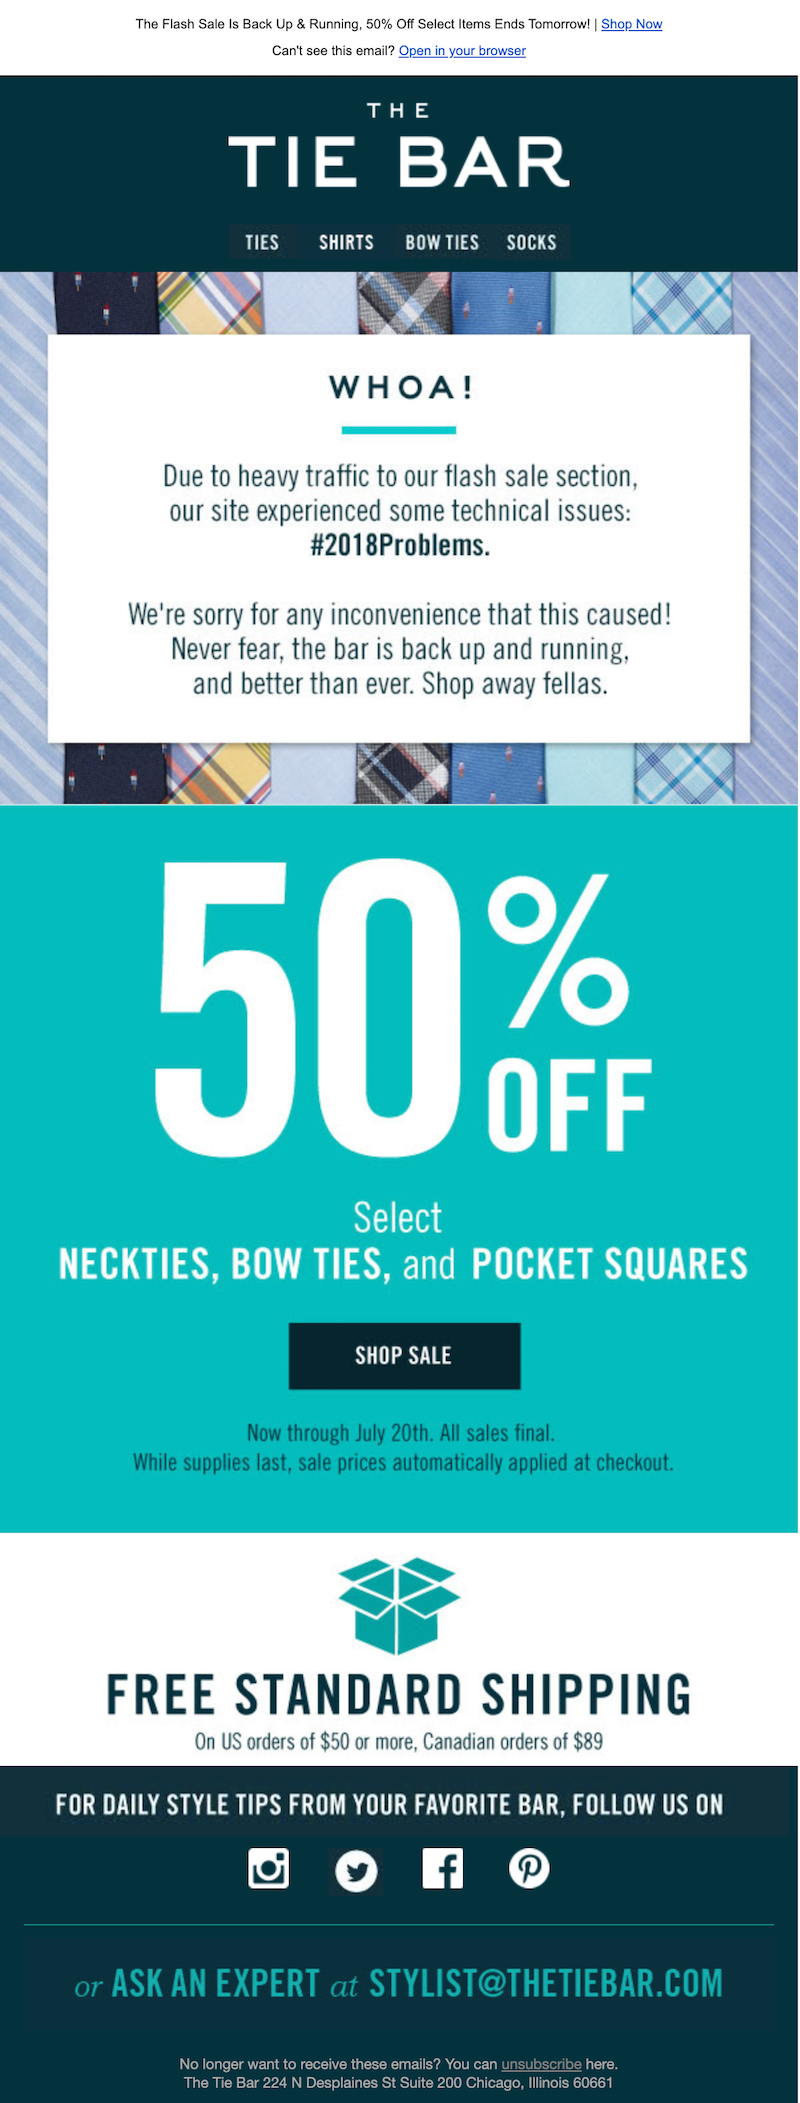 late delivery email examples